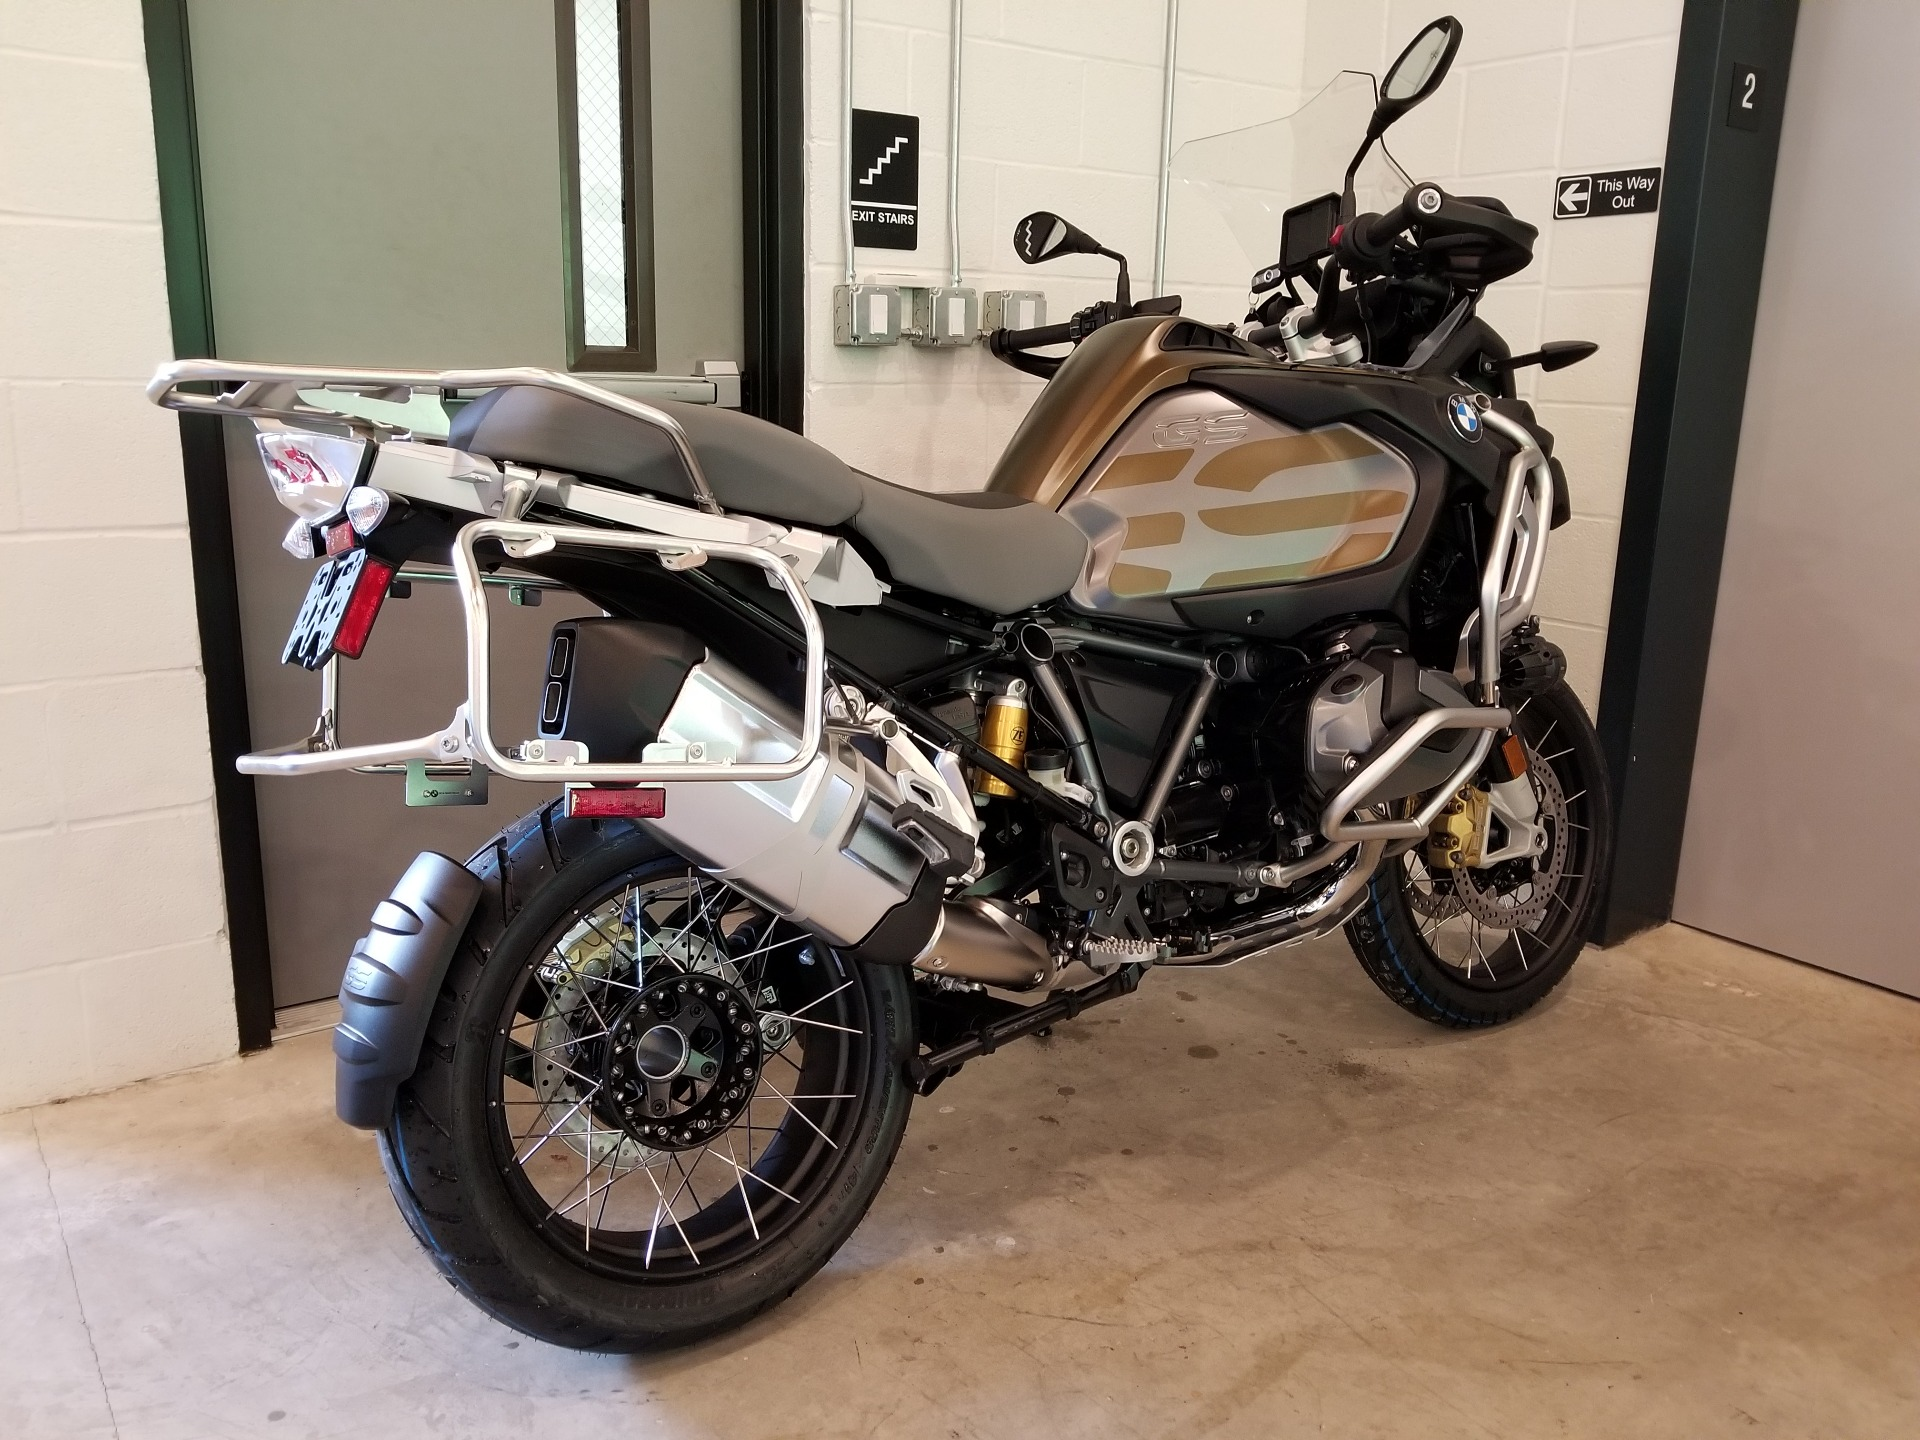 2019 BMW R 1250 GS Adventure in Port Clinton, Pennsylvania - Photo 6